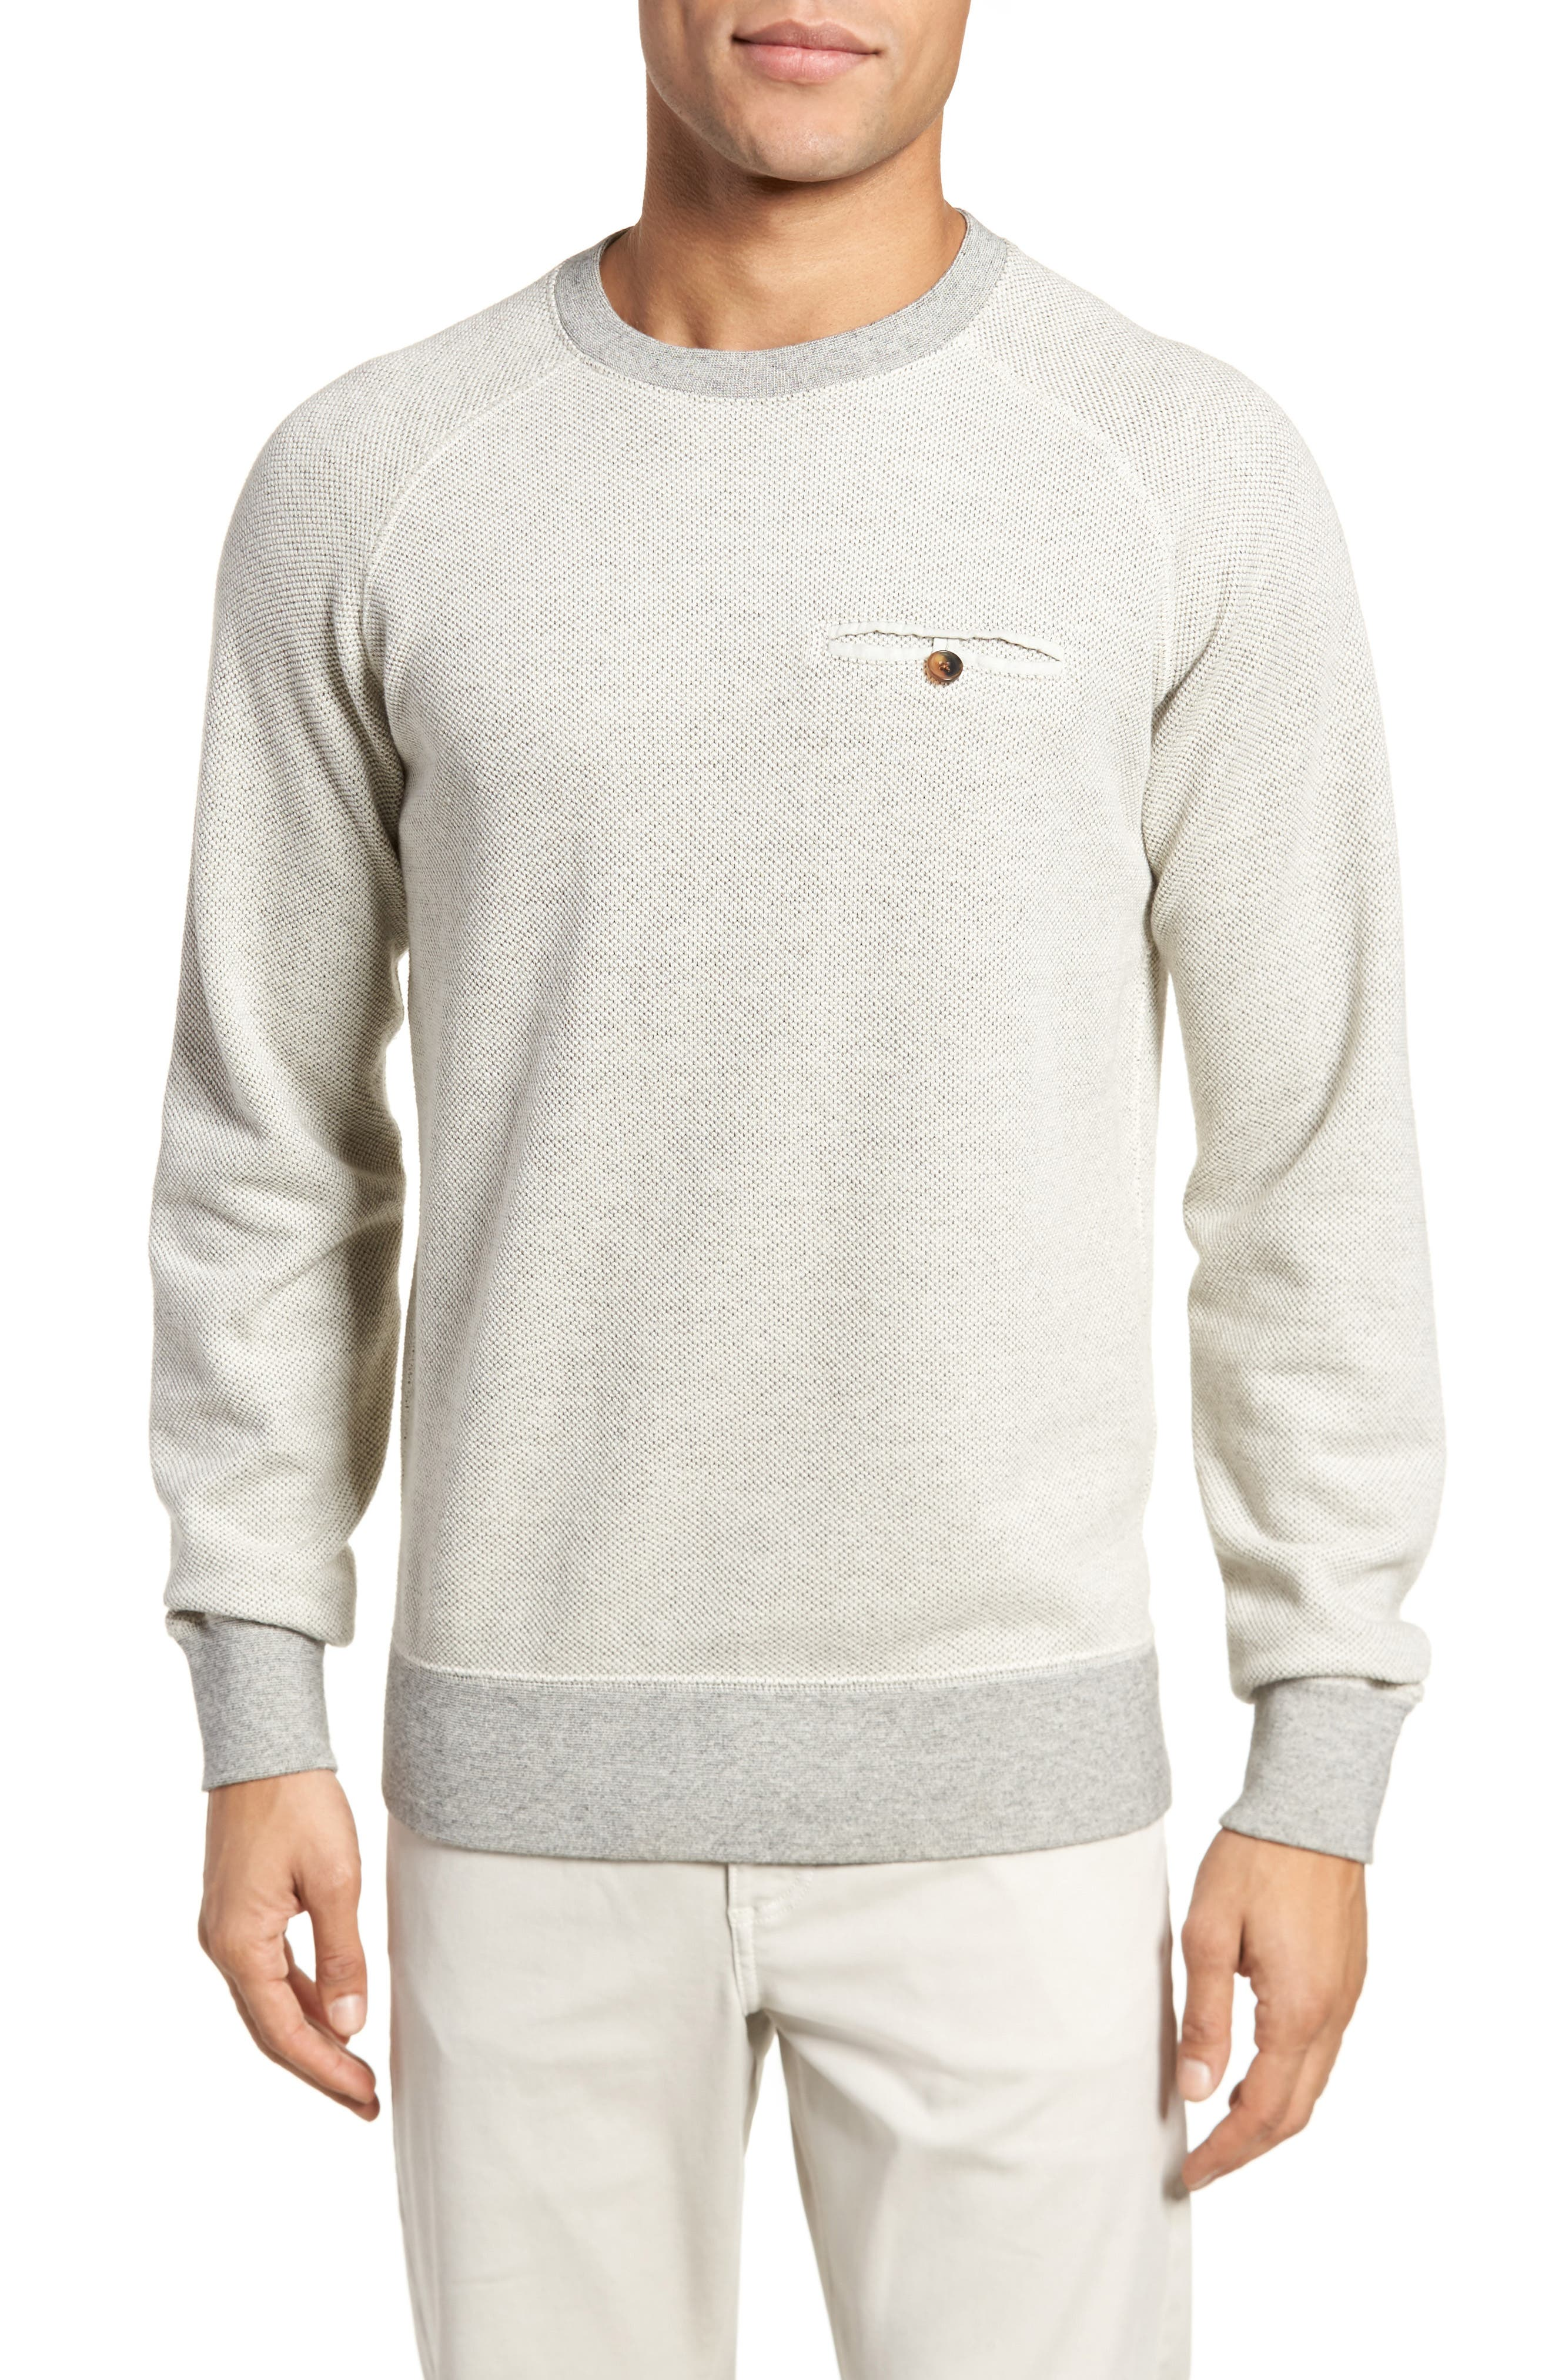 Tommy Pullover Sweatshirt,                             Main thumbnail 1, color,                             Light Grey